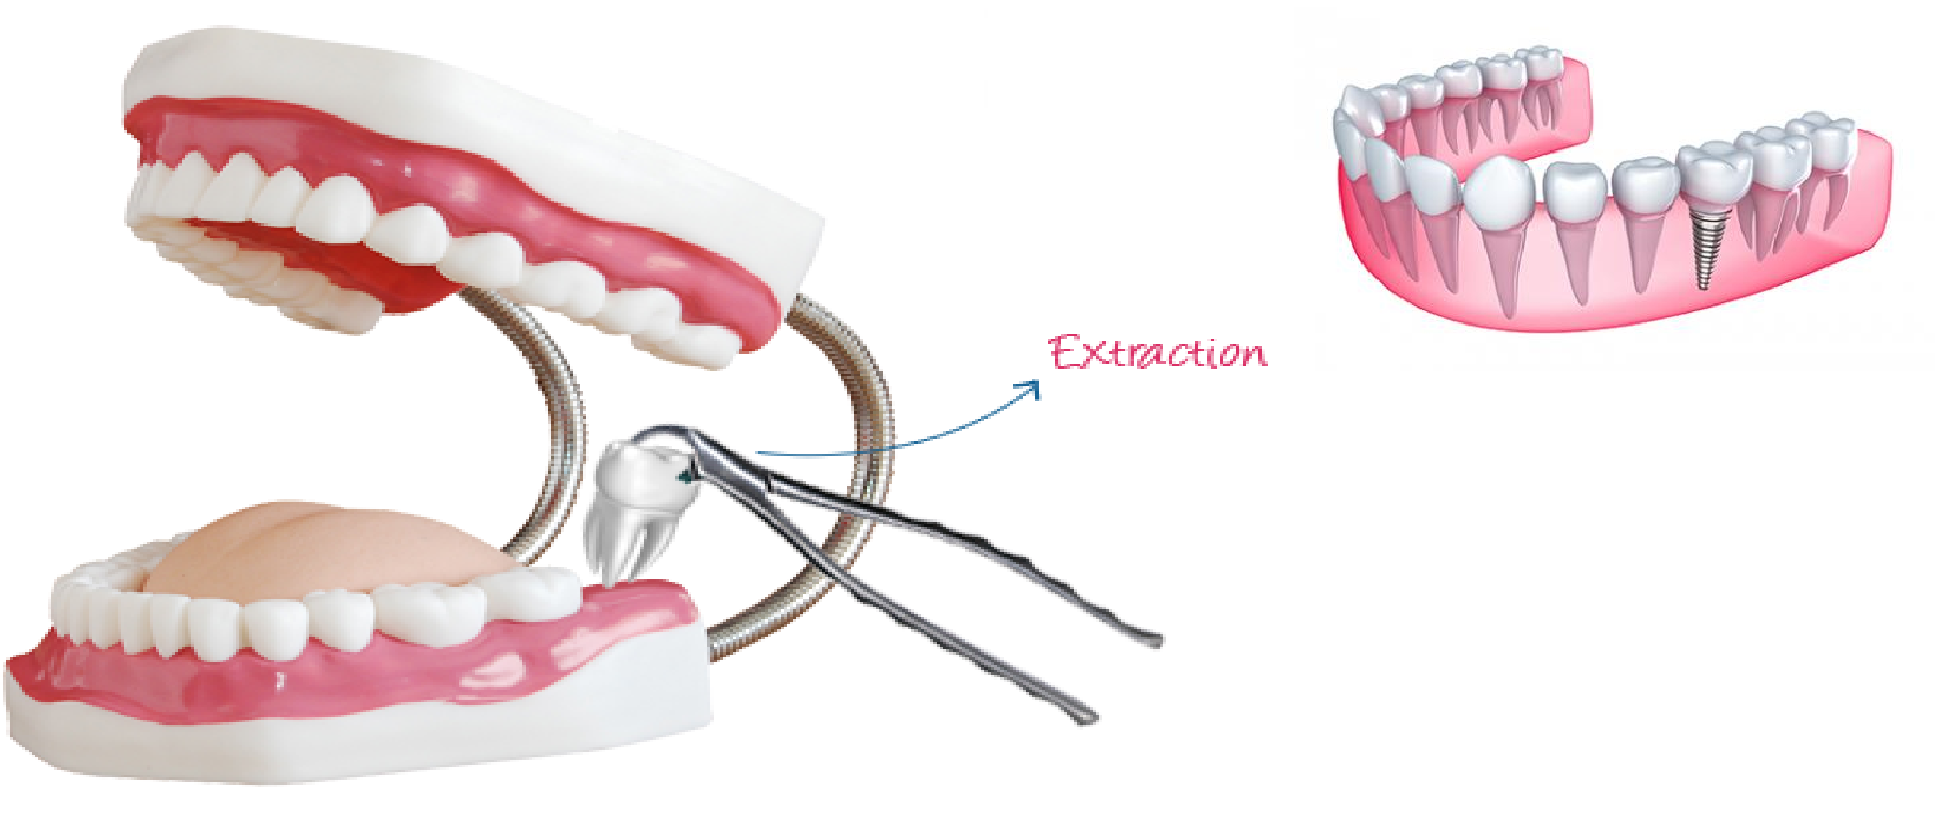 A Dental Extraction Also Referred To As Tooth Extraction Exodontia Exodontics Or Informally Tooth Pulli Dental Extraction Dental Hospital Pediatric Dental